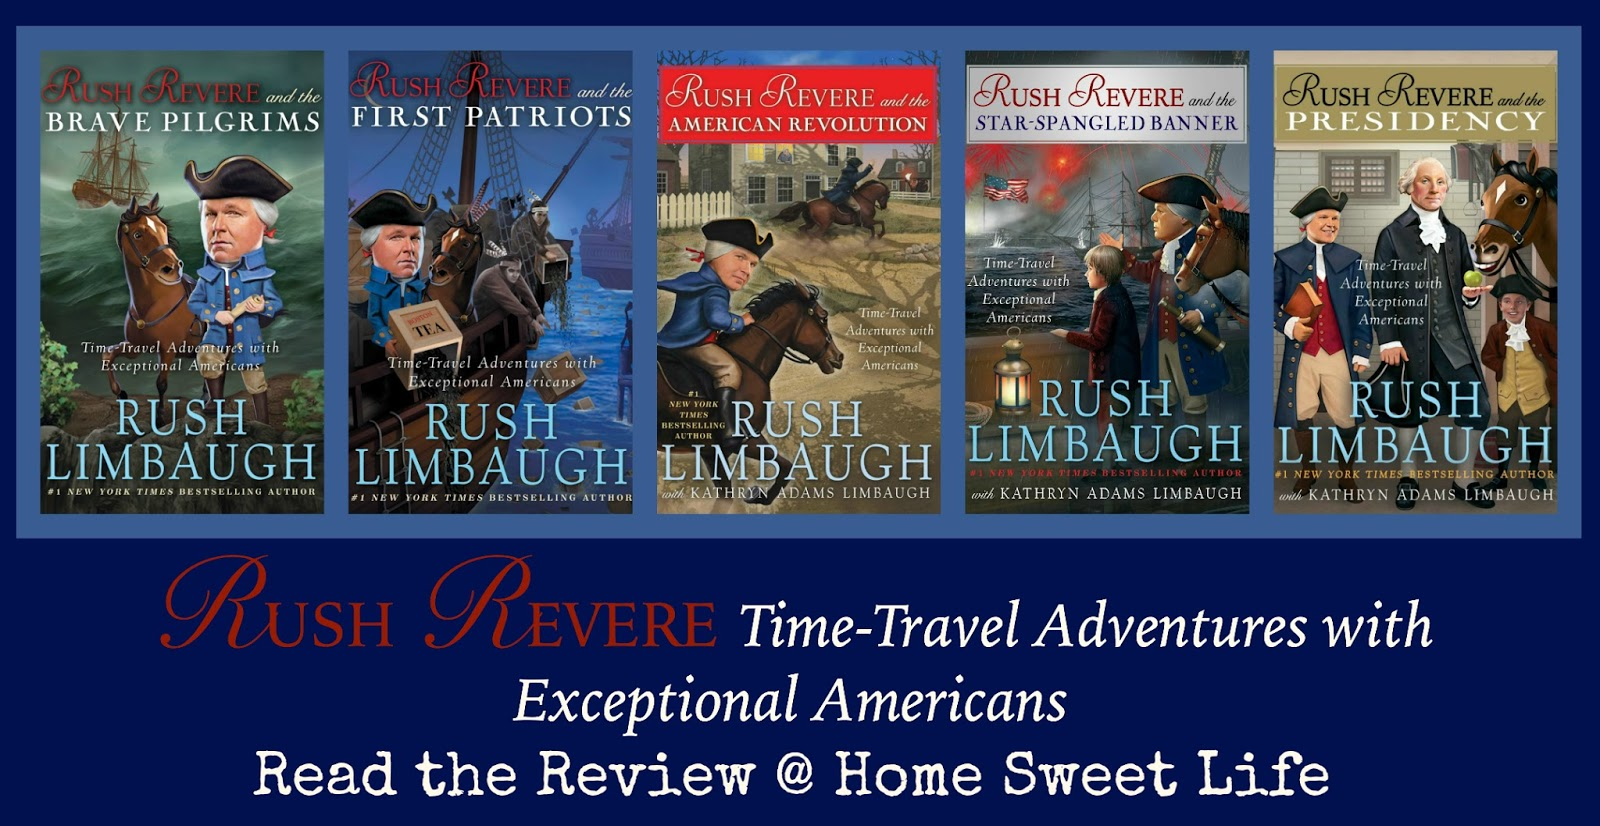 Home Sweet Life Adventures Of Rush Revere Book Series A Crew Review